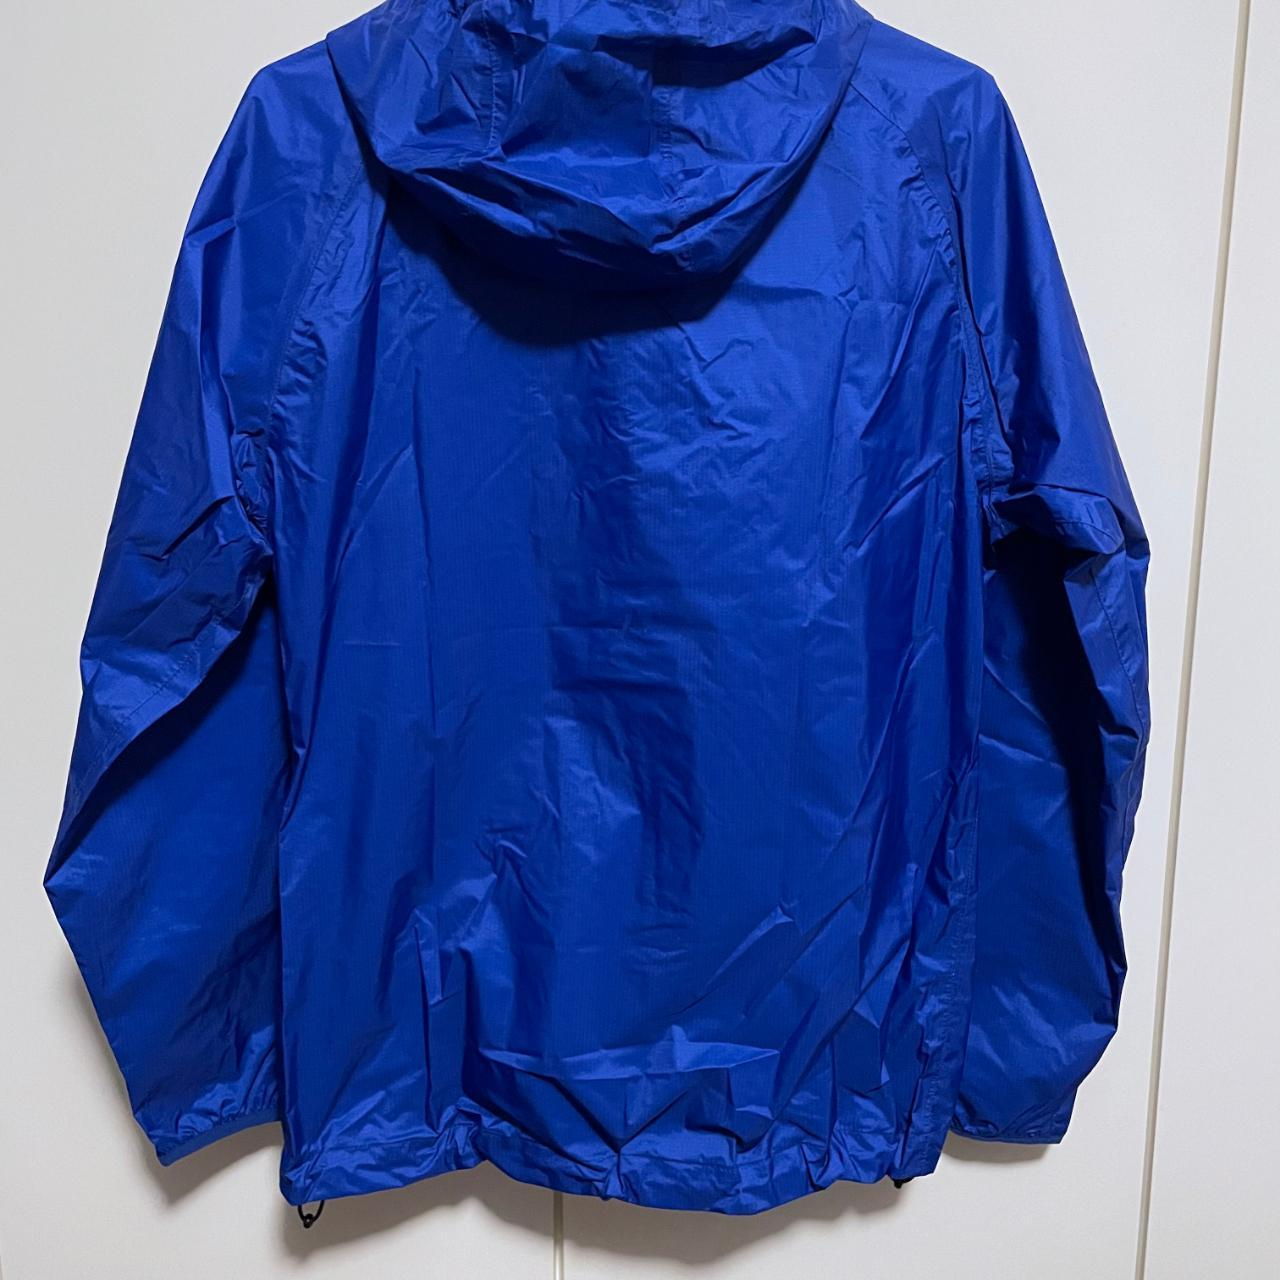 Product Image 1 - Penfield - Travelshell Jacket in